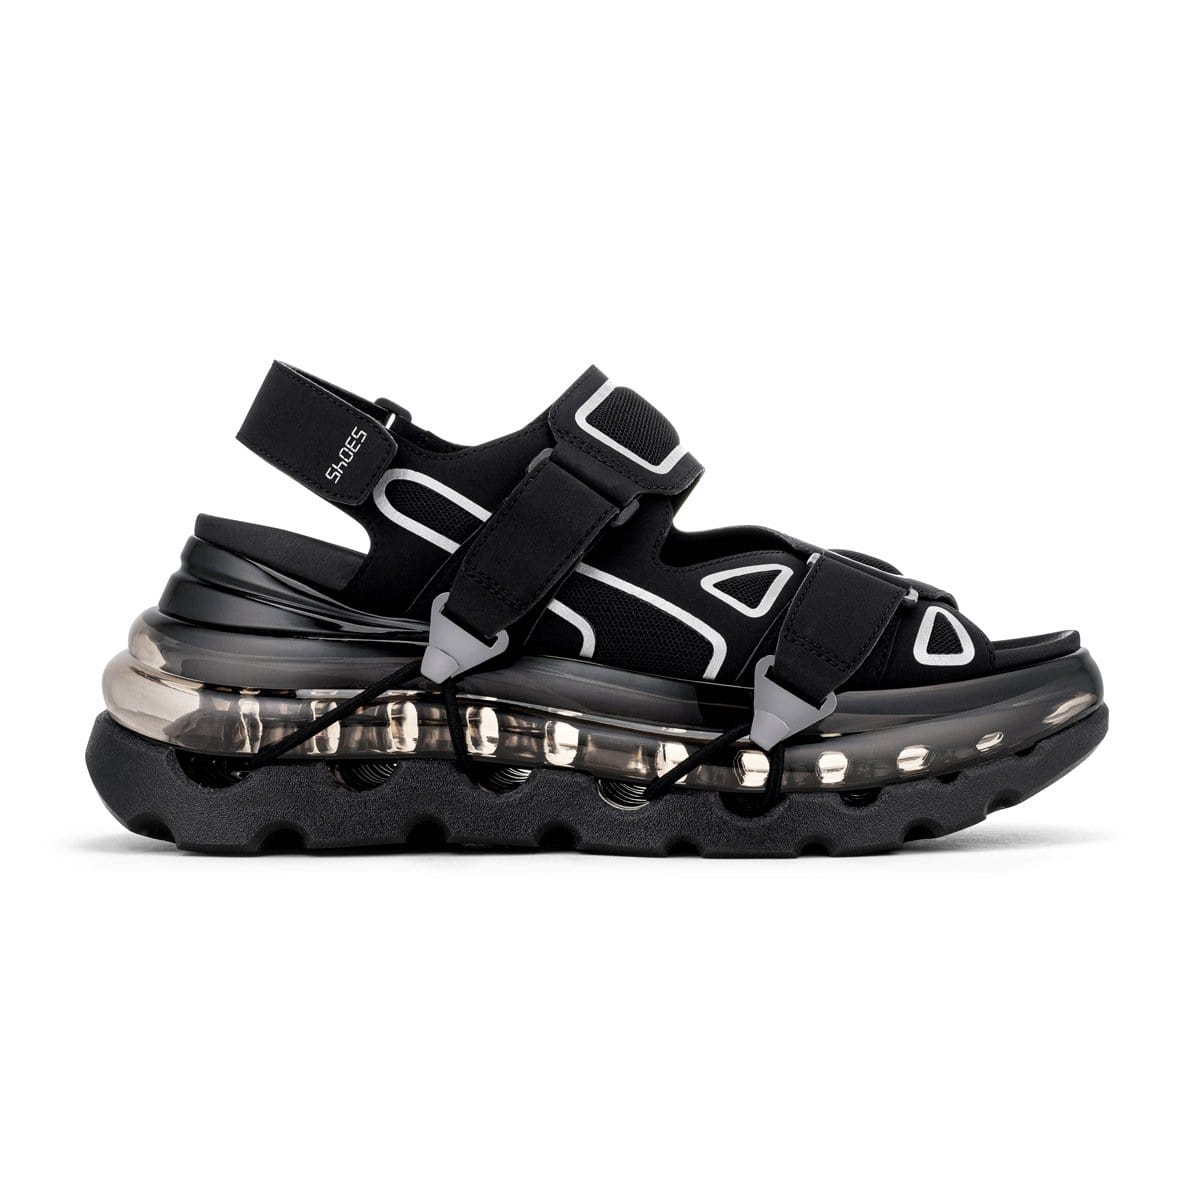 SHOES 53045 - SKYWALK'AIR - BLACK